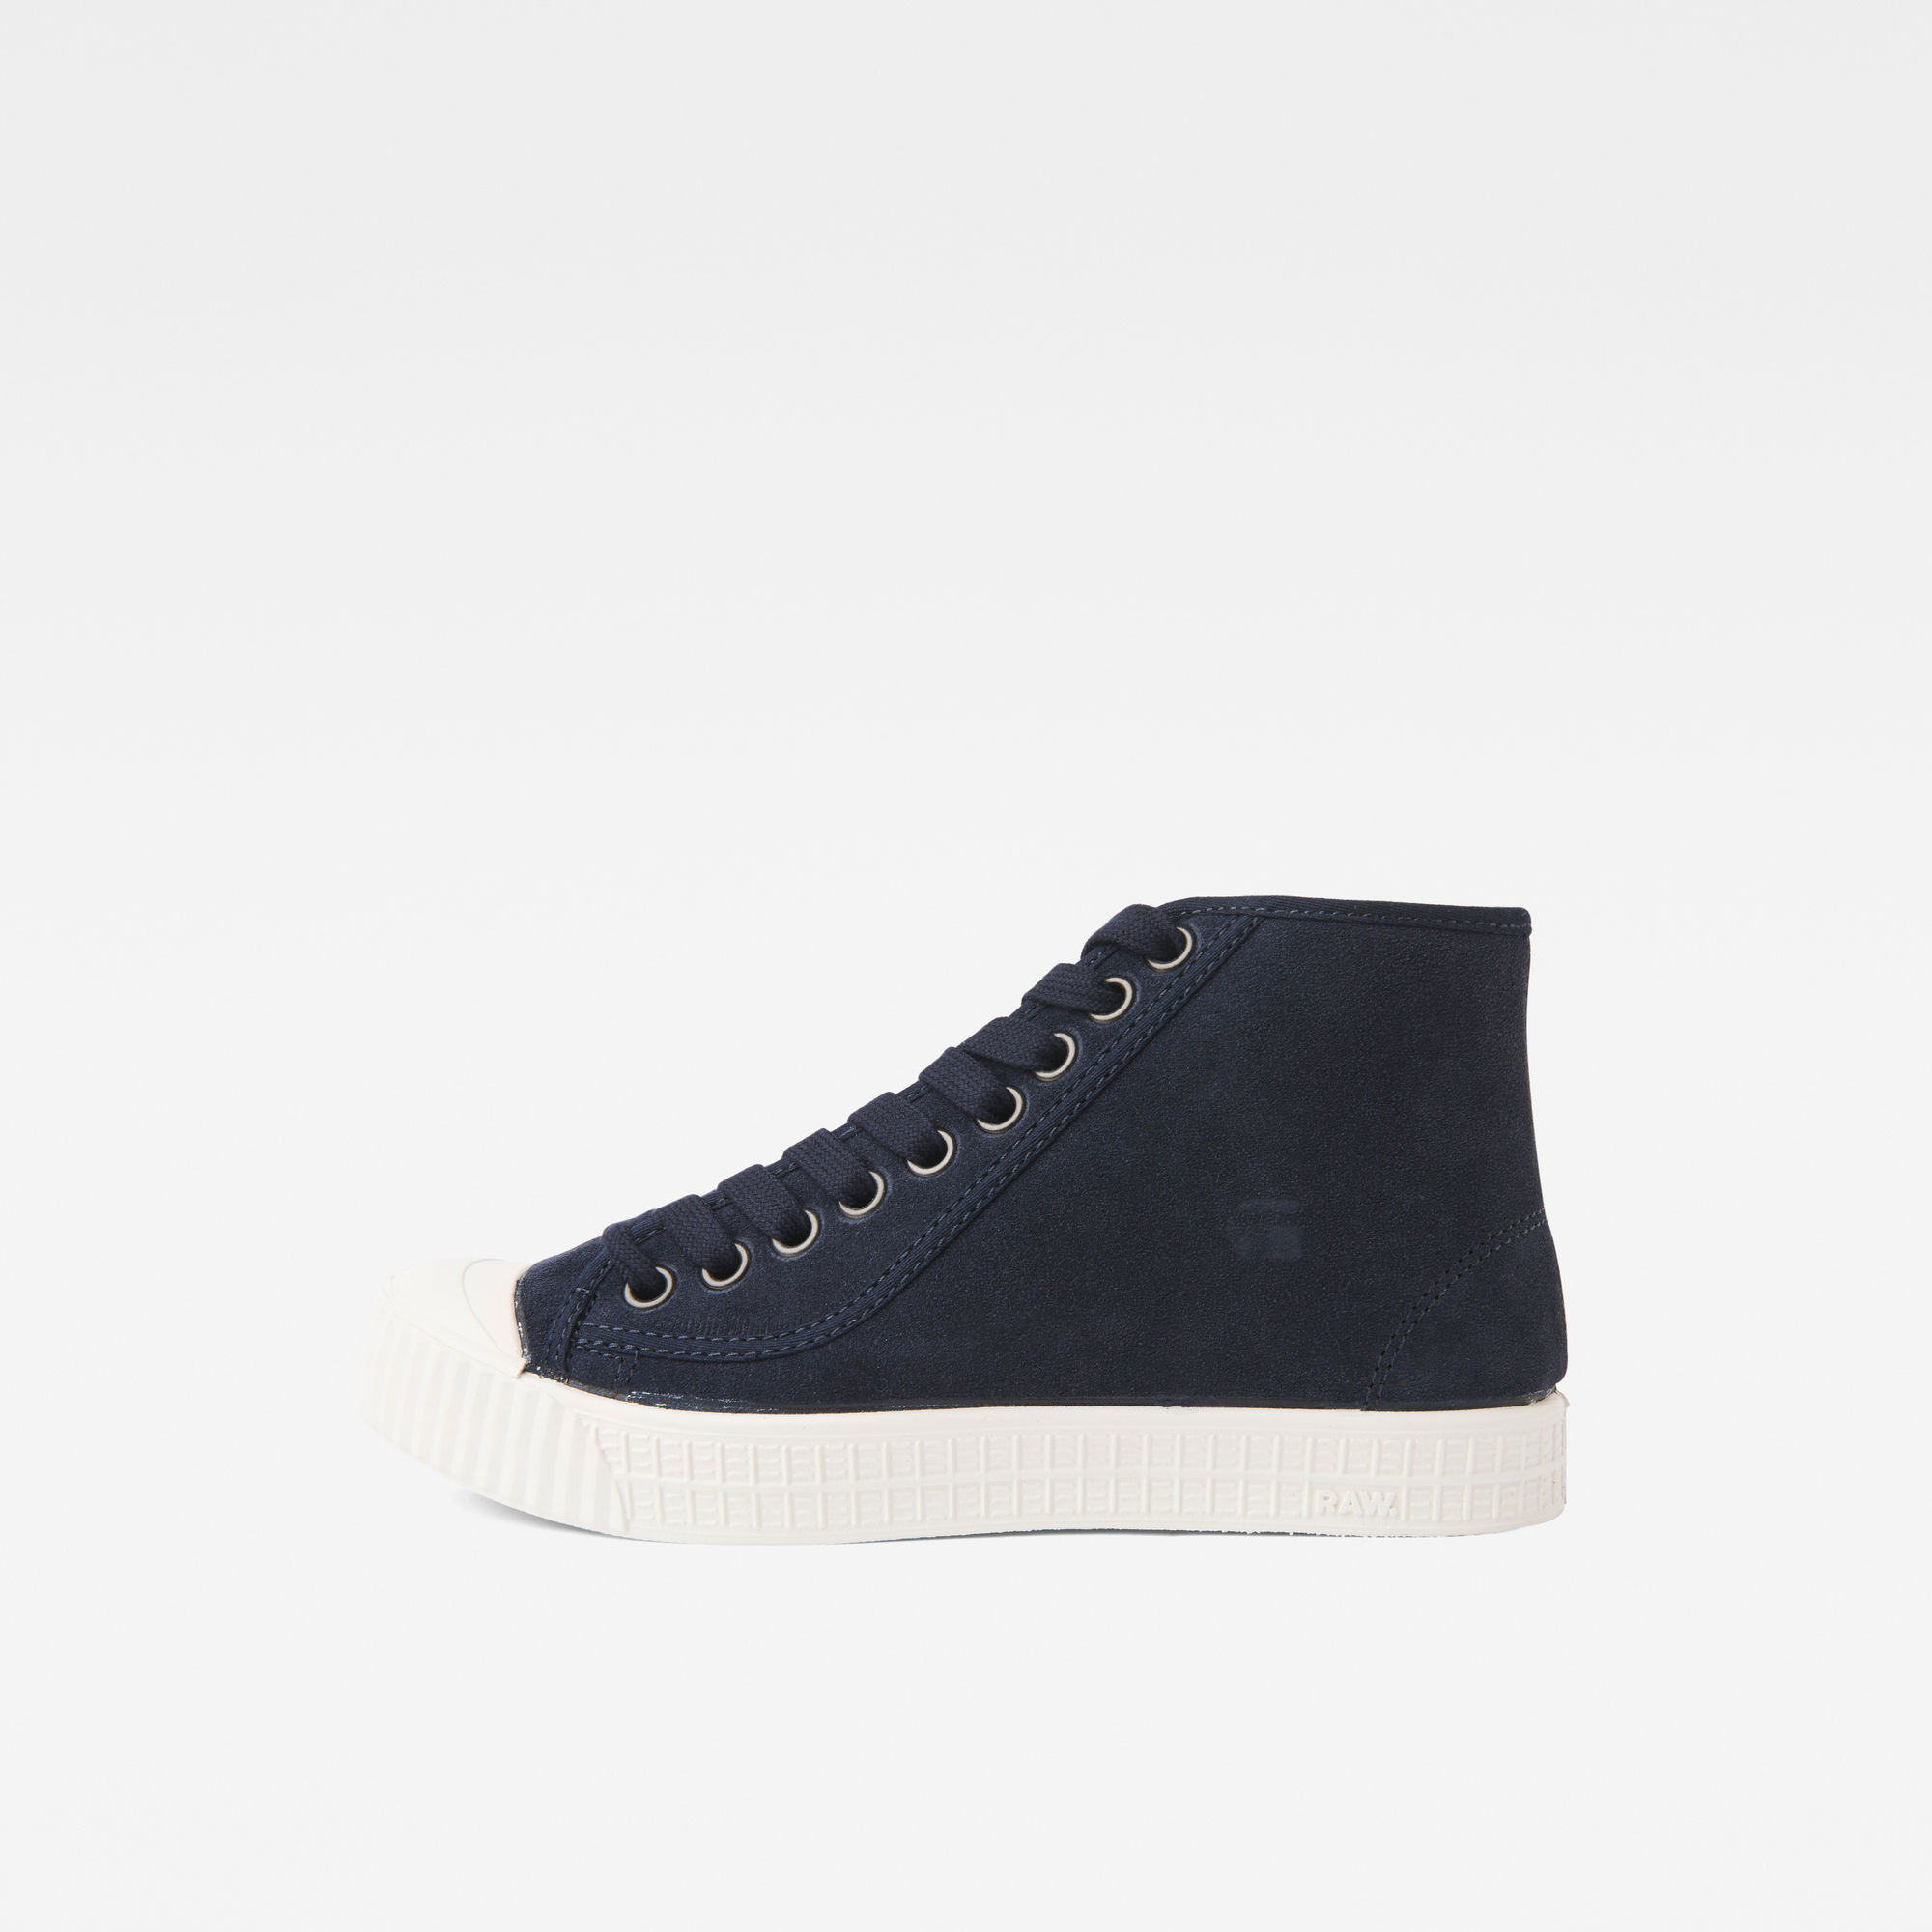 Image of G Star Raw Rovulc Suede Mid Sneakers